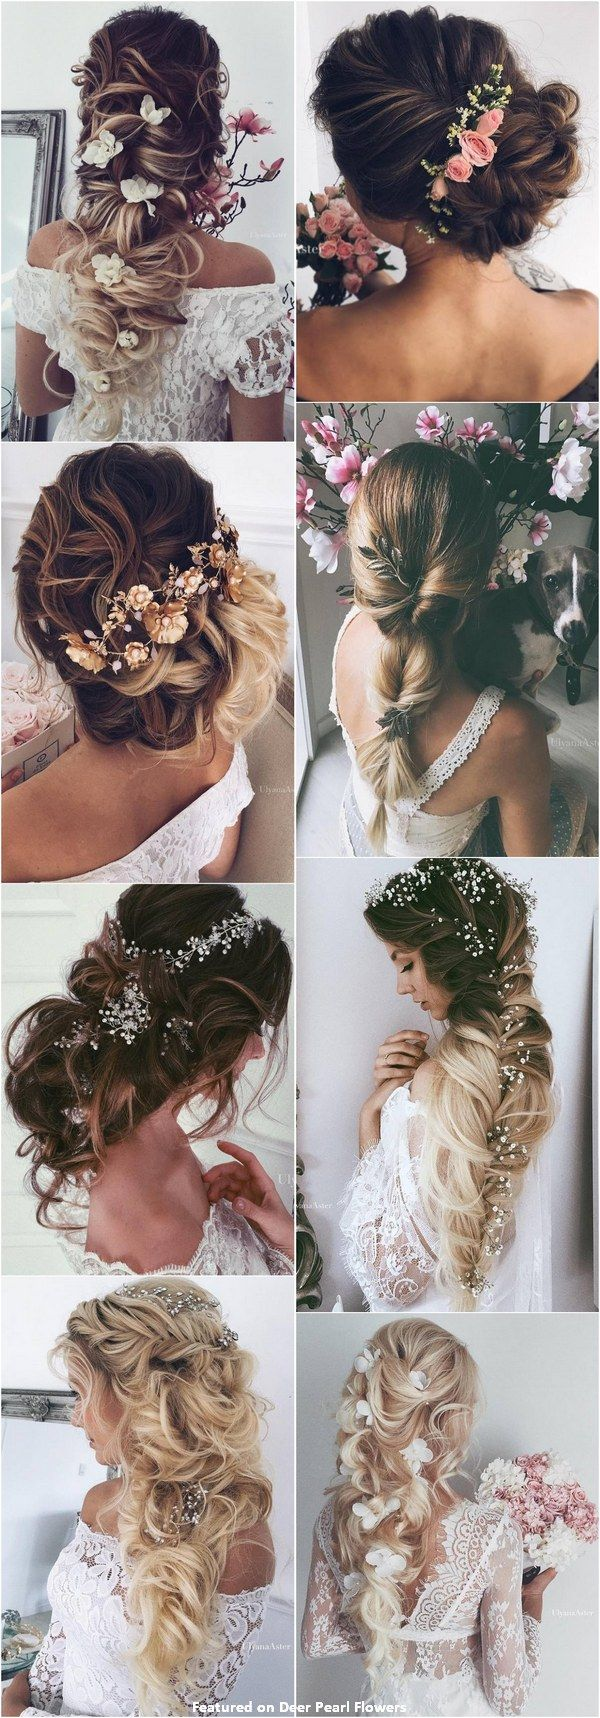 new romantic long bridal wedding hairstyles to try aster